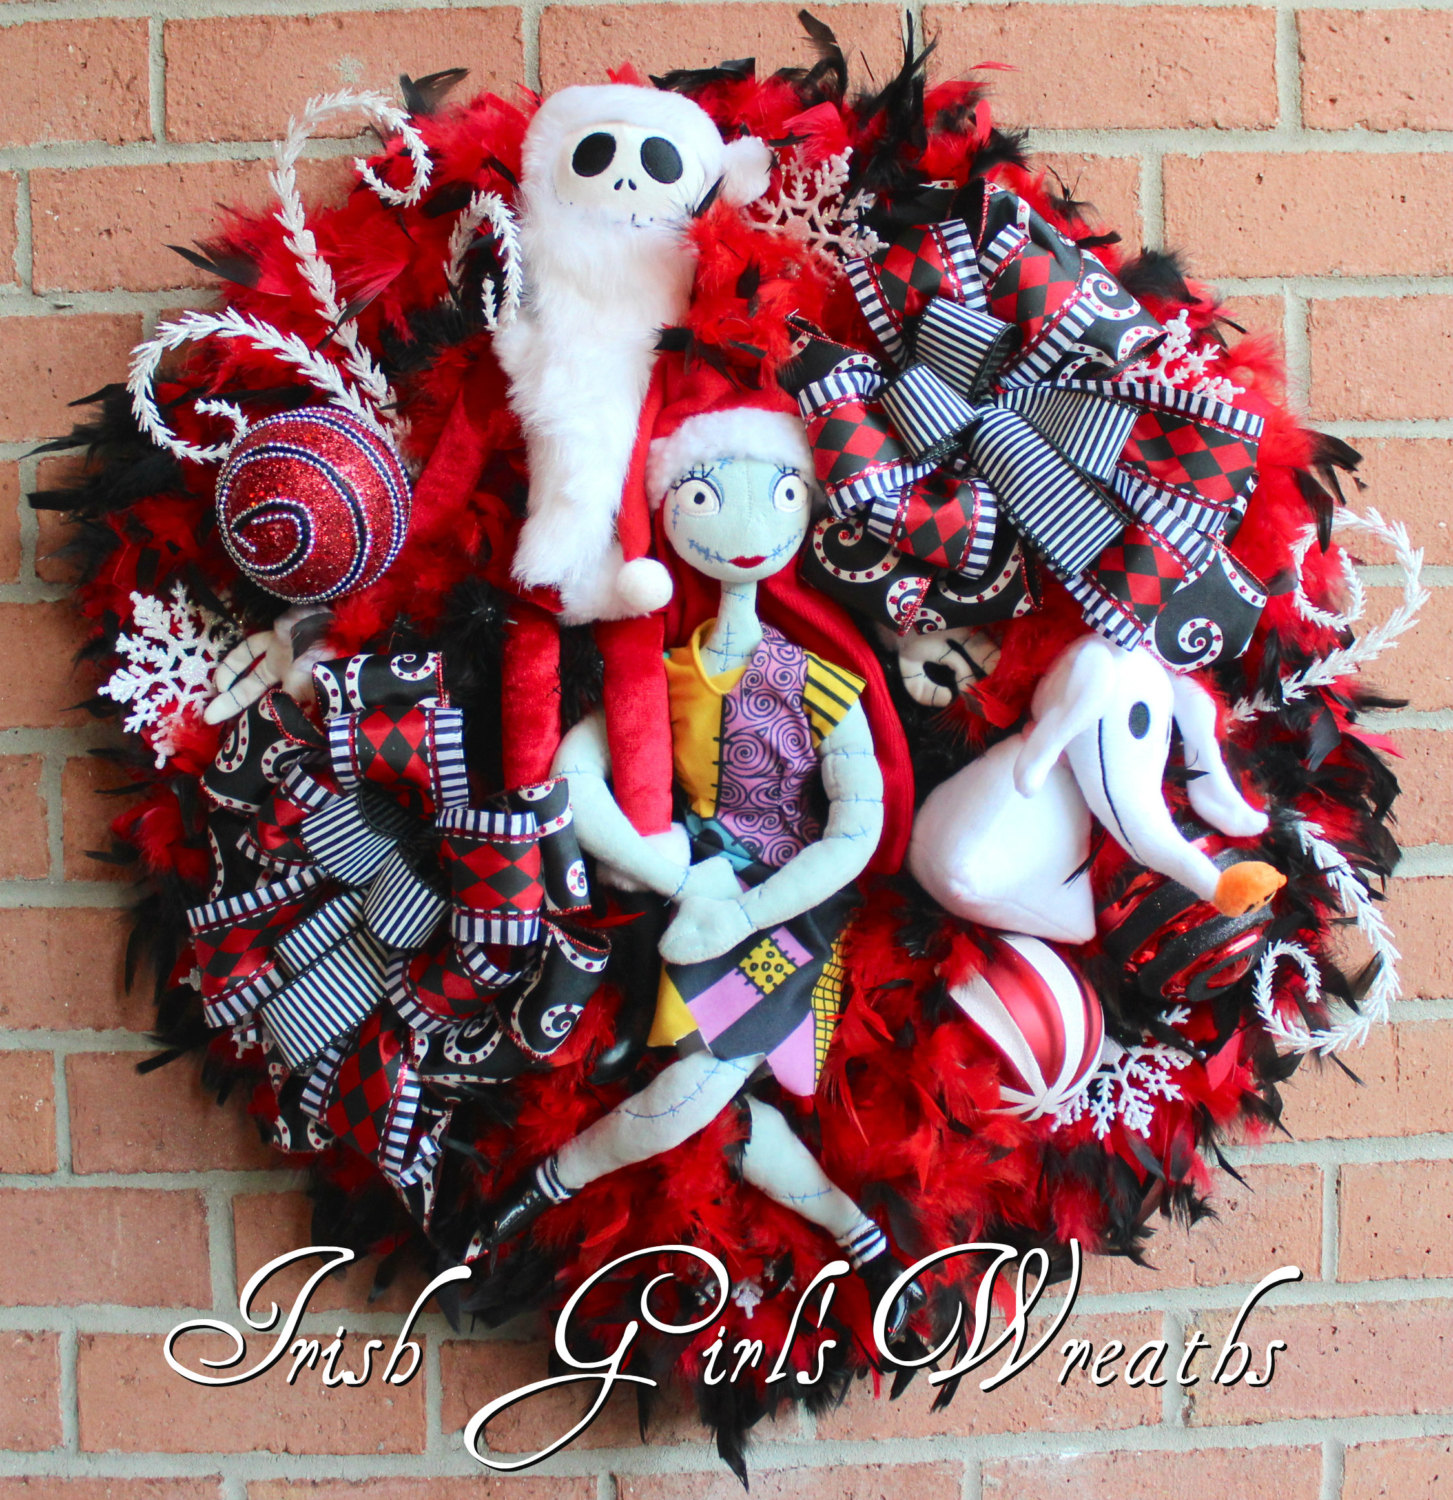 Sandy Claws Nightmare Before Christmas Wreath, Jack Skellington & Sally, and Zero Christmas Wreath